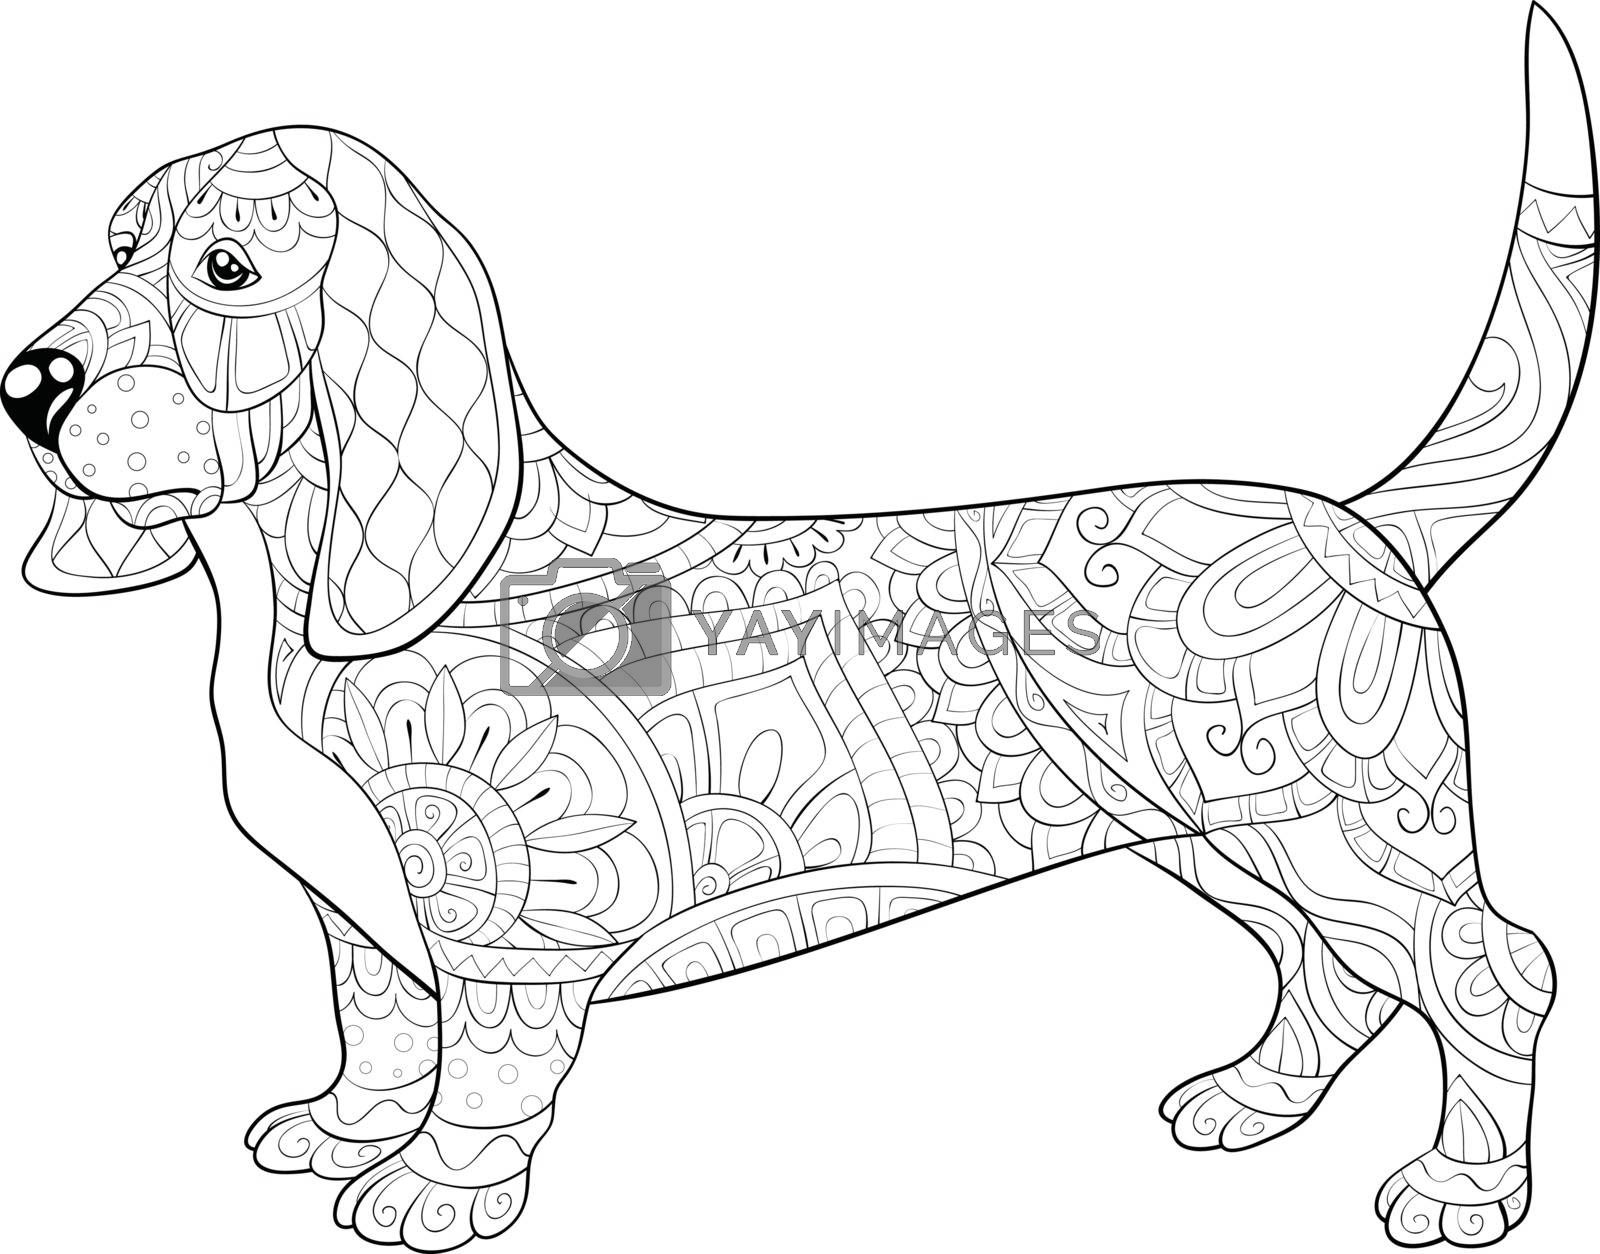 Adult coloring book,page a cute dog with ornaments image for rel by Nonuzza